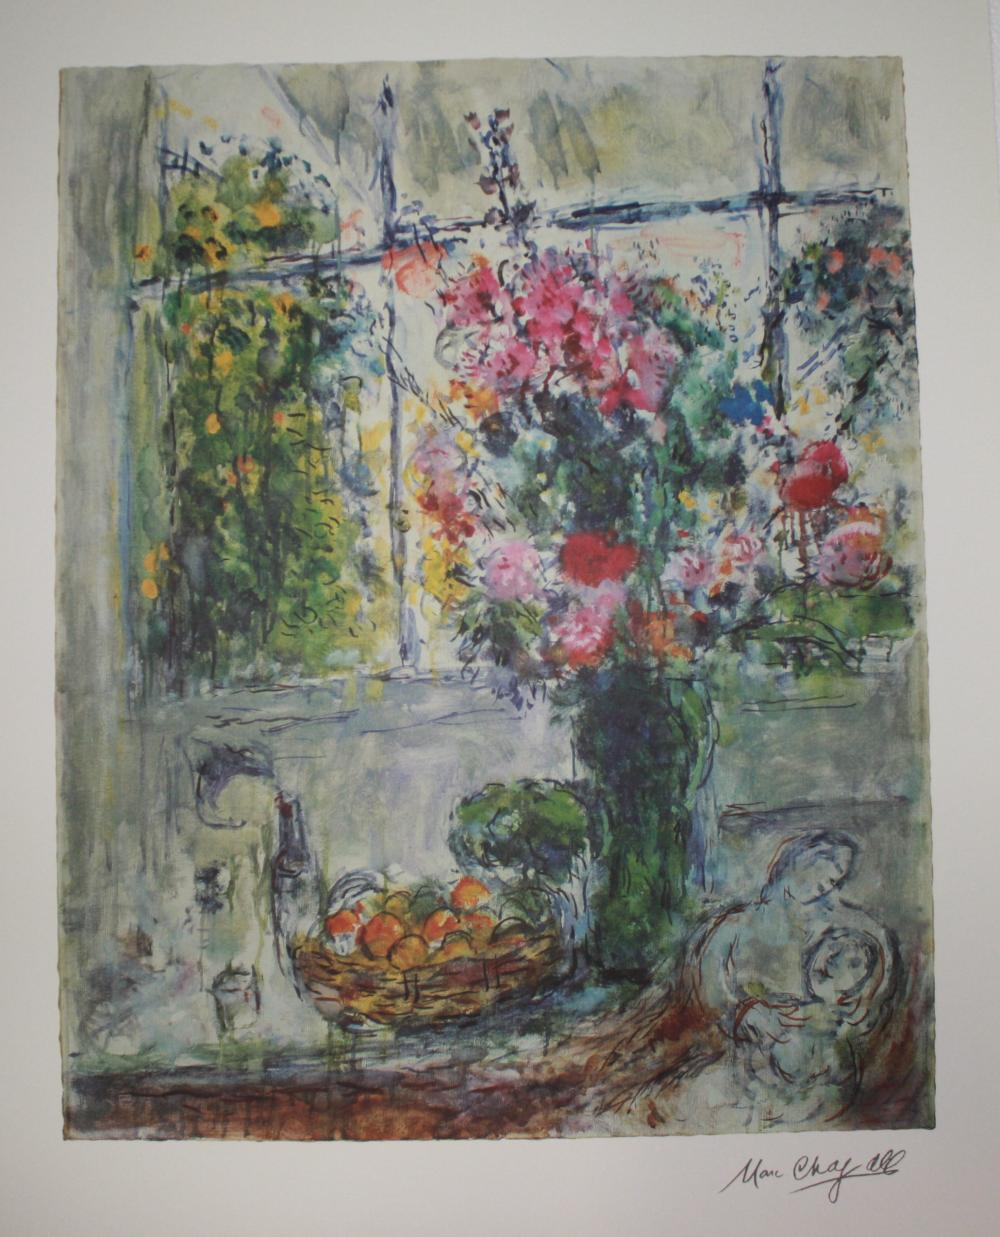 Marc Chagall, L/E Lithograph, Signed and Hand Numbered